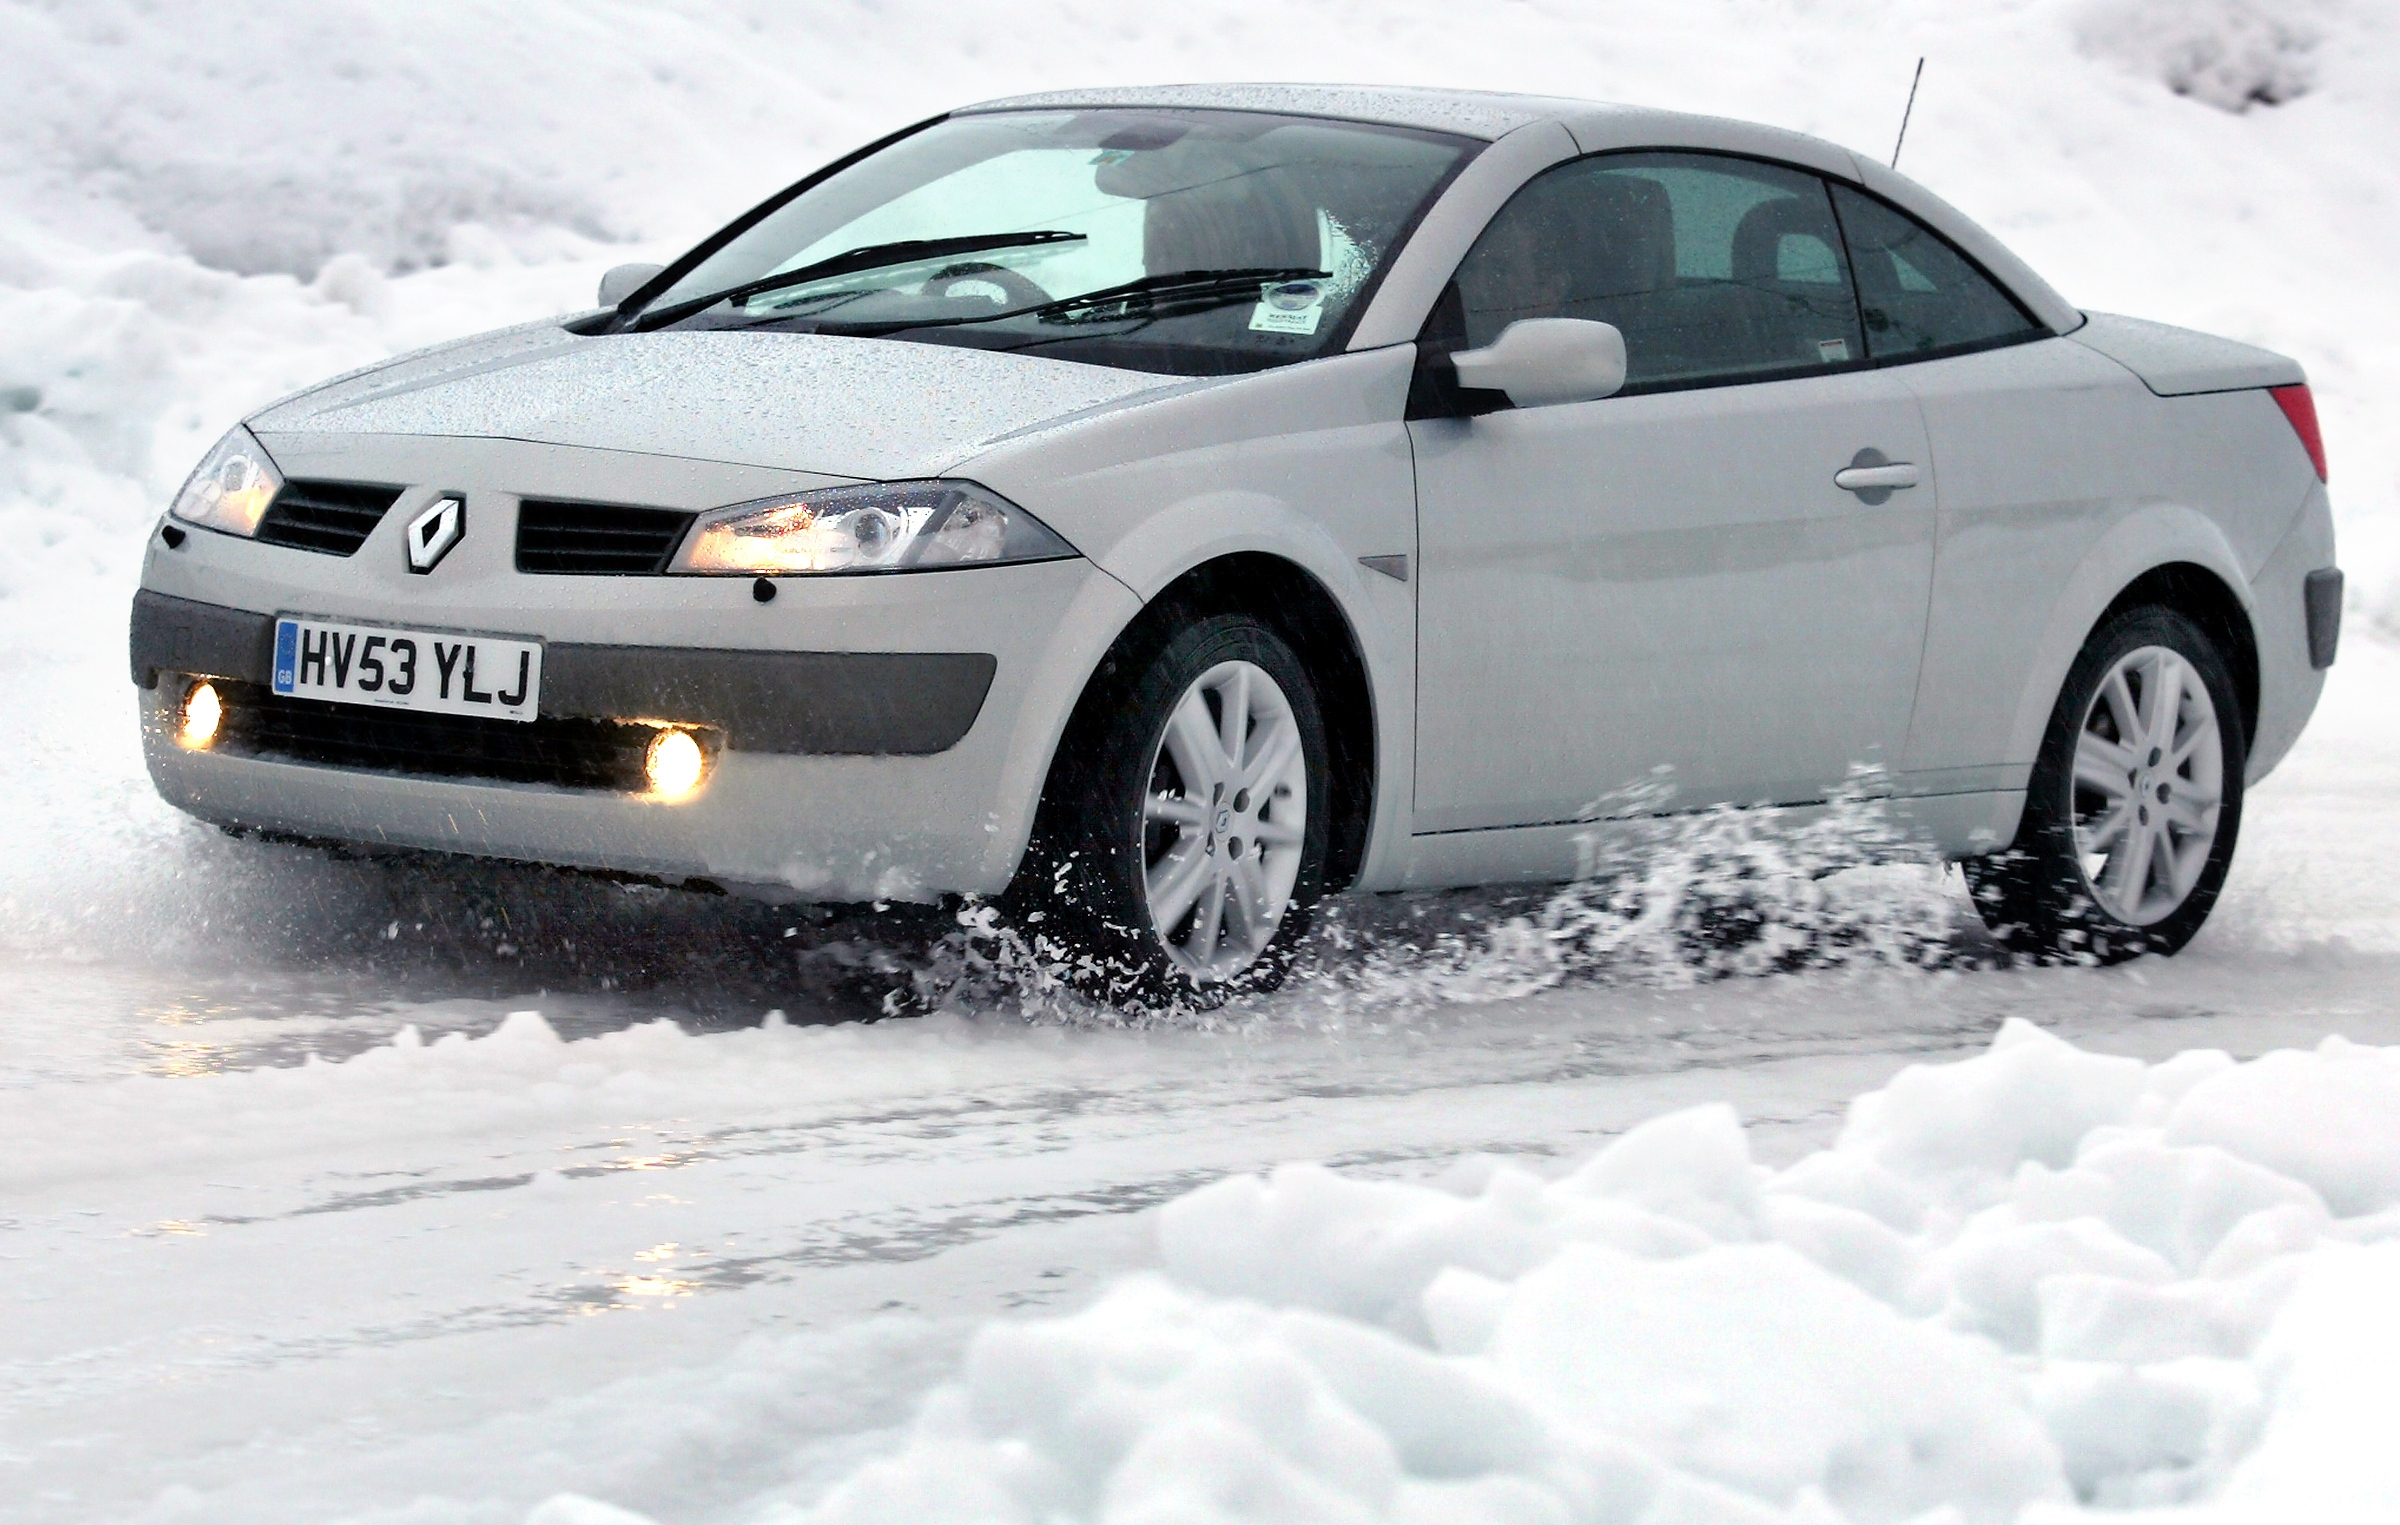 More should be done to prepare motorists for coping with snowy conditions